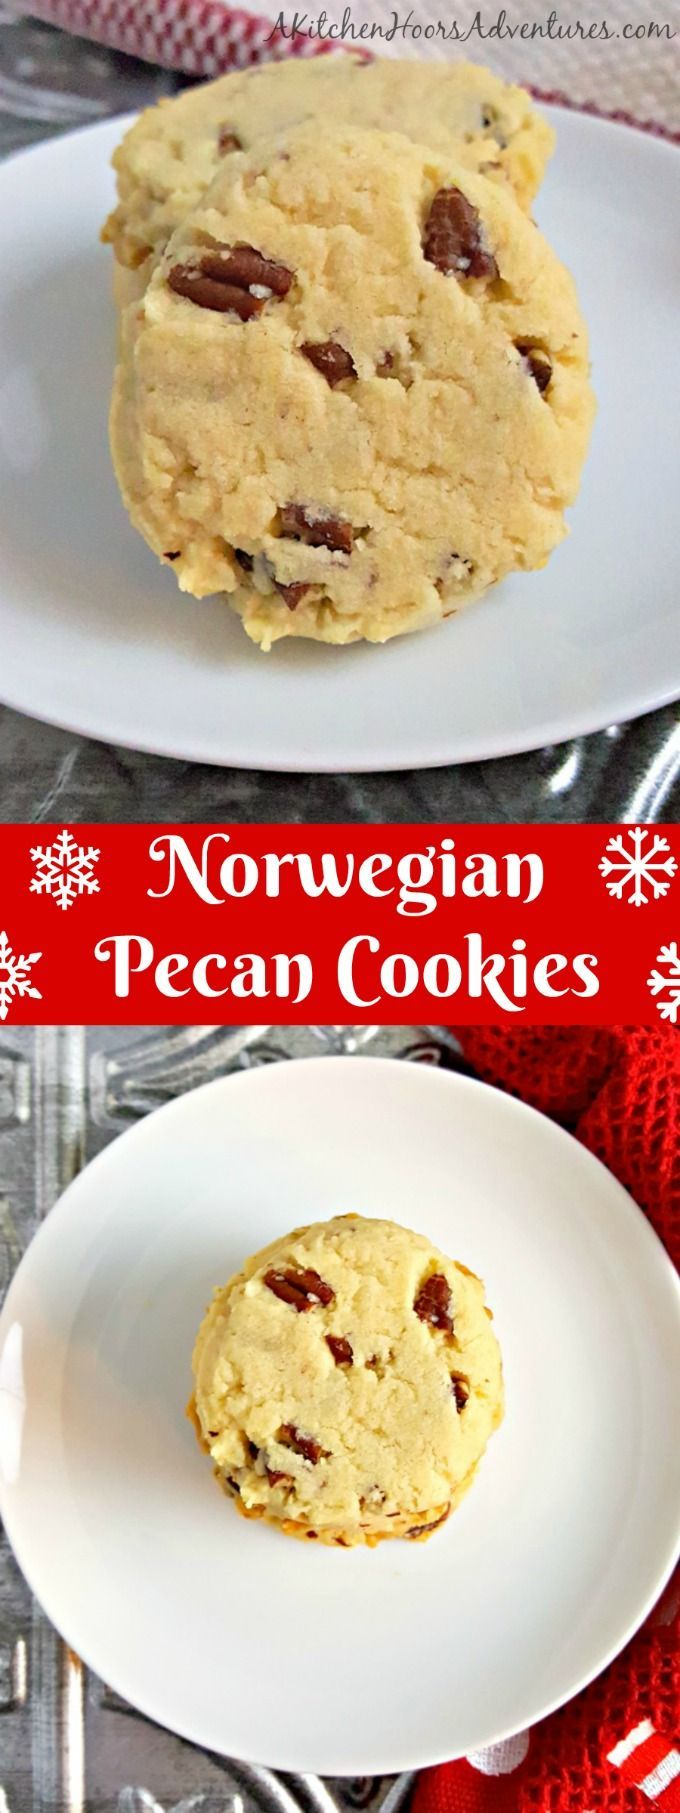 These Norwegian Pecan Cookies smell like Christmas. They are buttery and light with delicious pecans scattered throughout. The perfect finale to 12 Days of Cookies. #ChristmasCookies